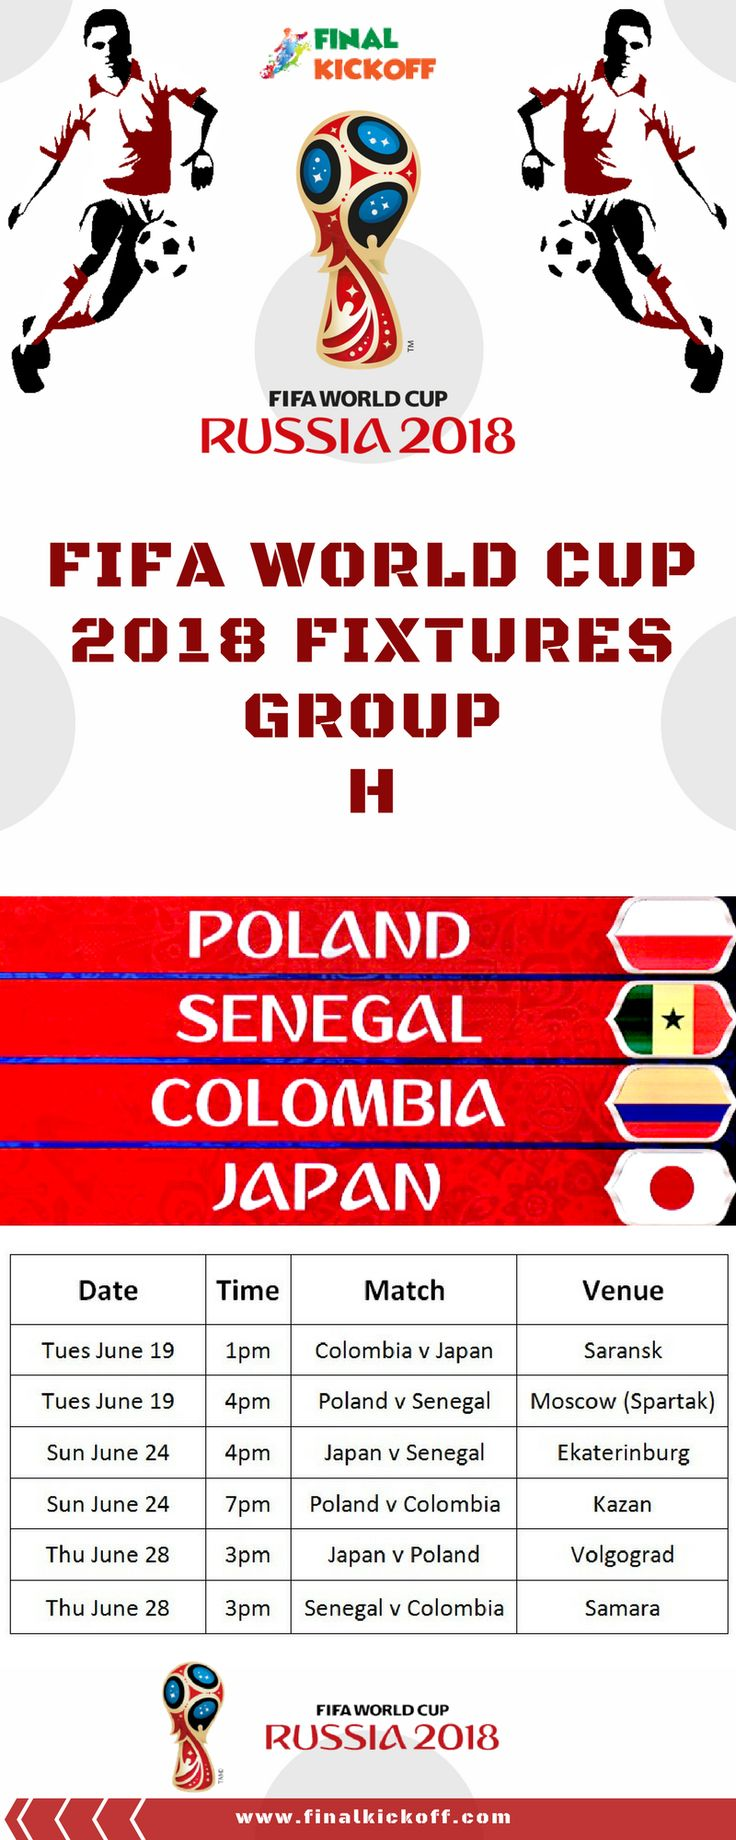 World Cup 2018 Moscow Schedule